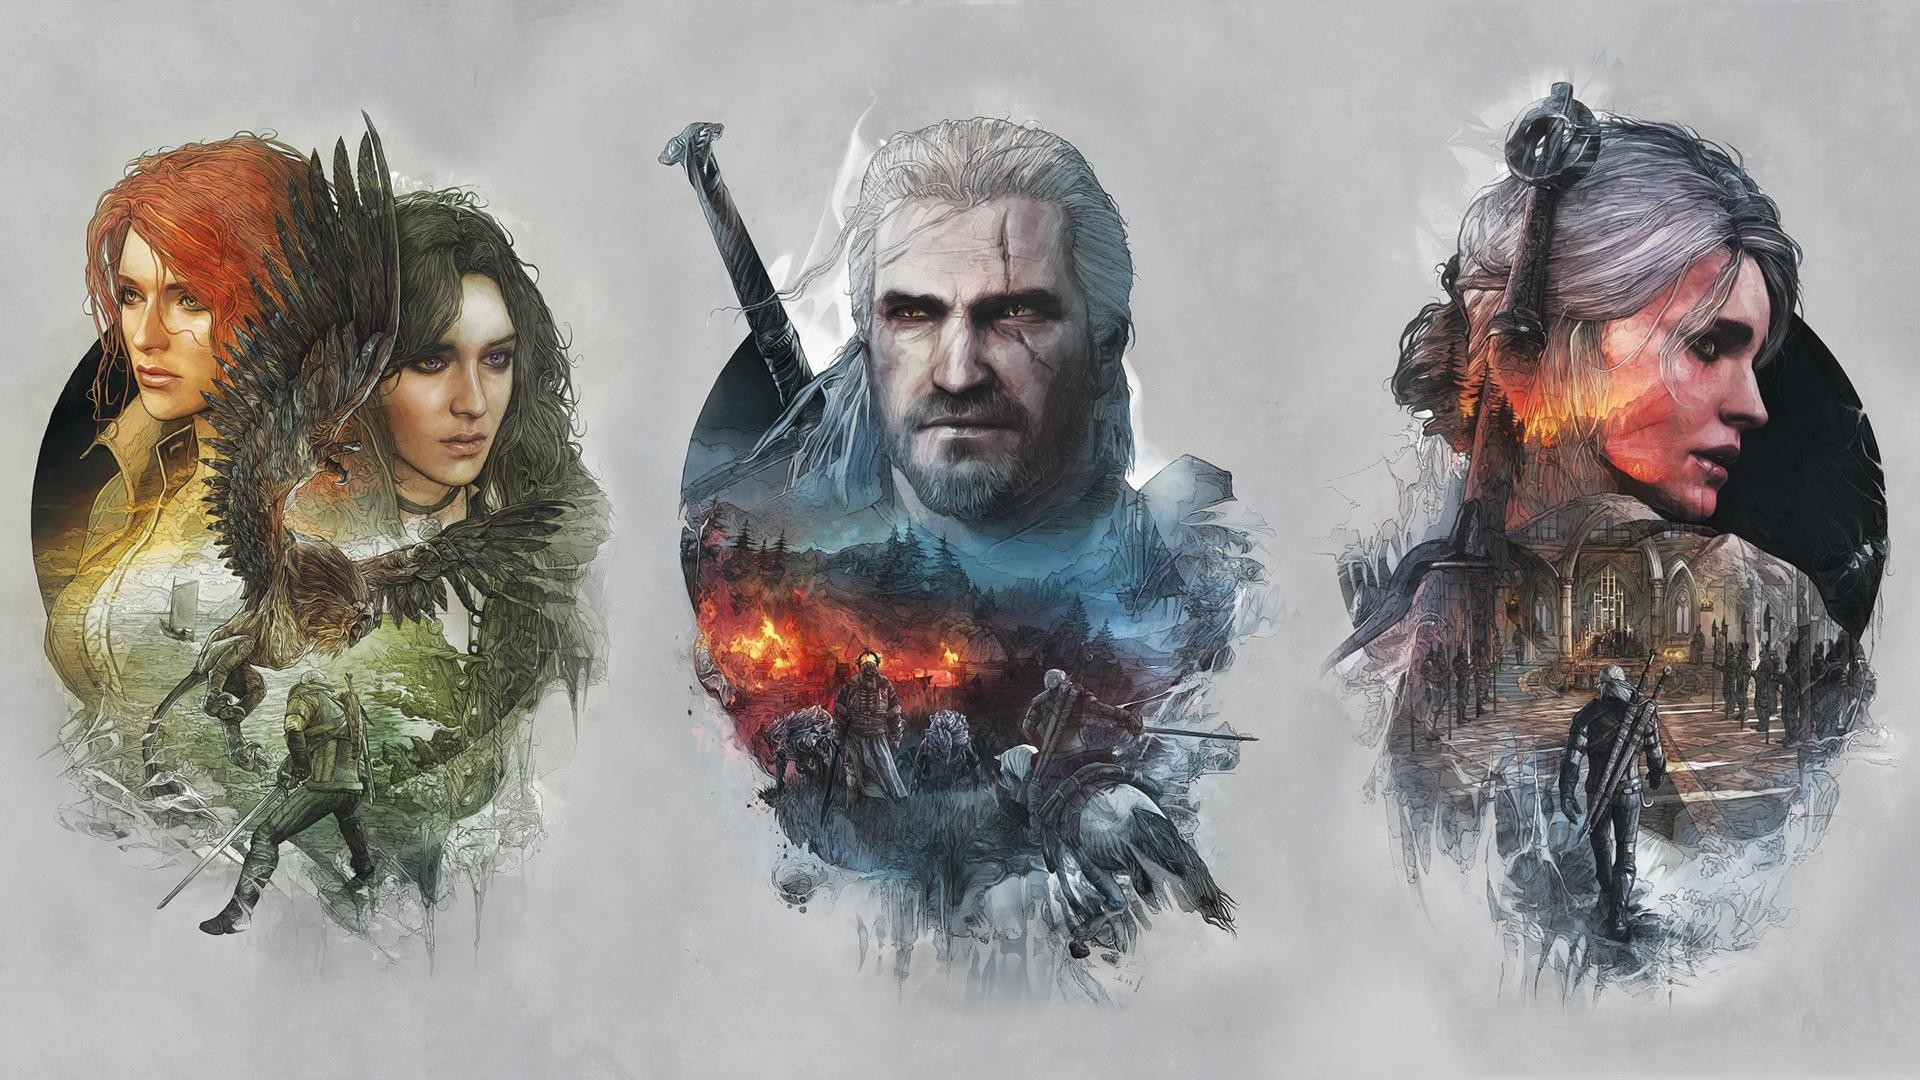 A Witcher 3 Wallpaper I Made By Combining 3 Of The Steelbook .